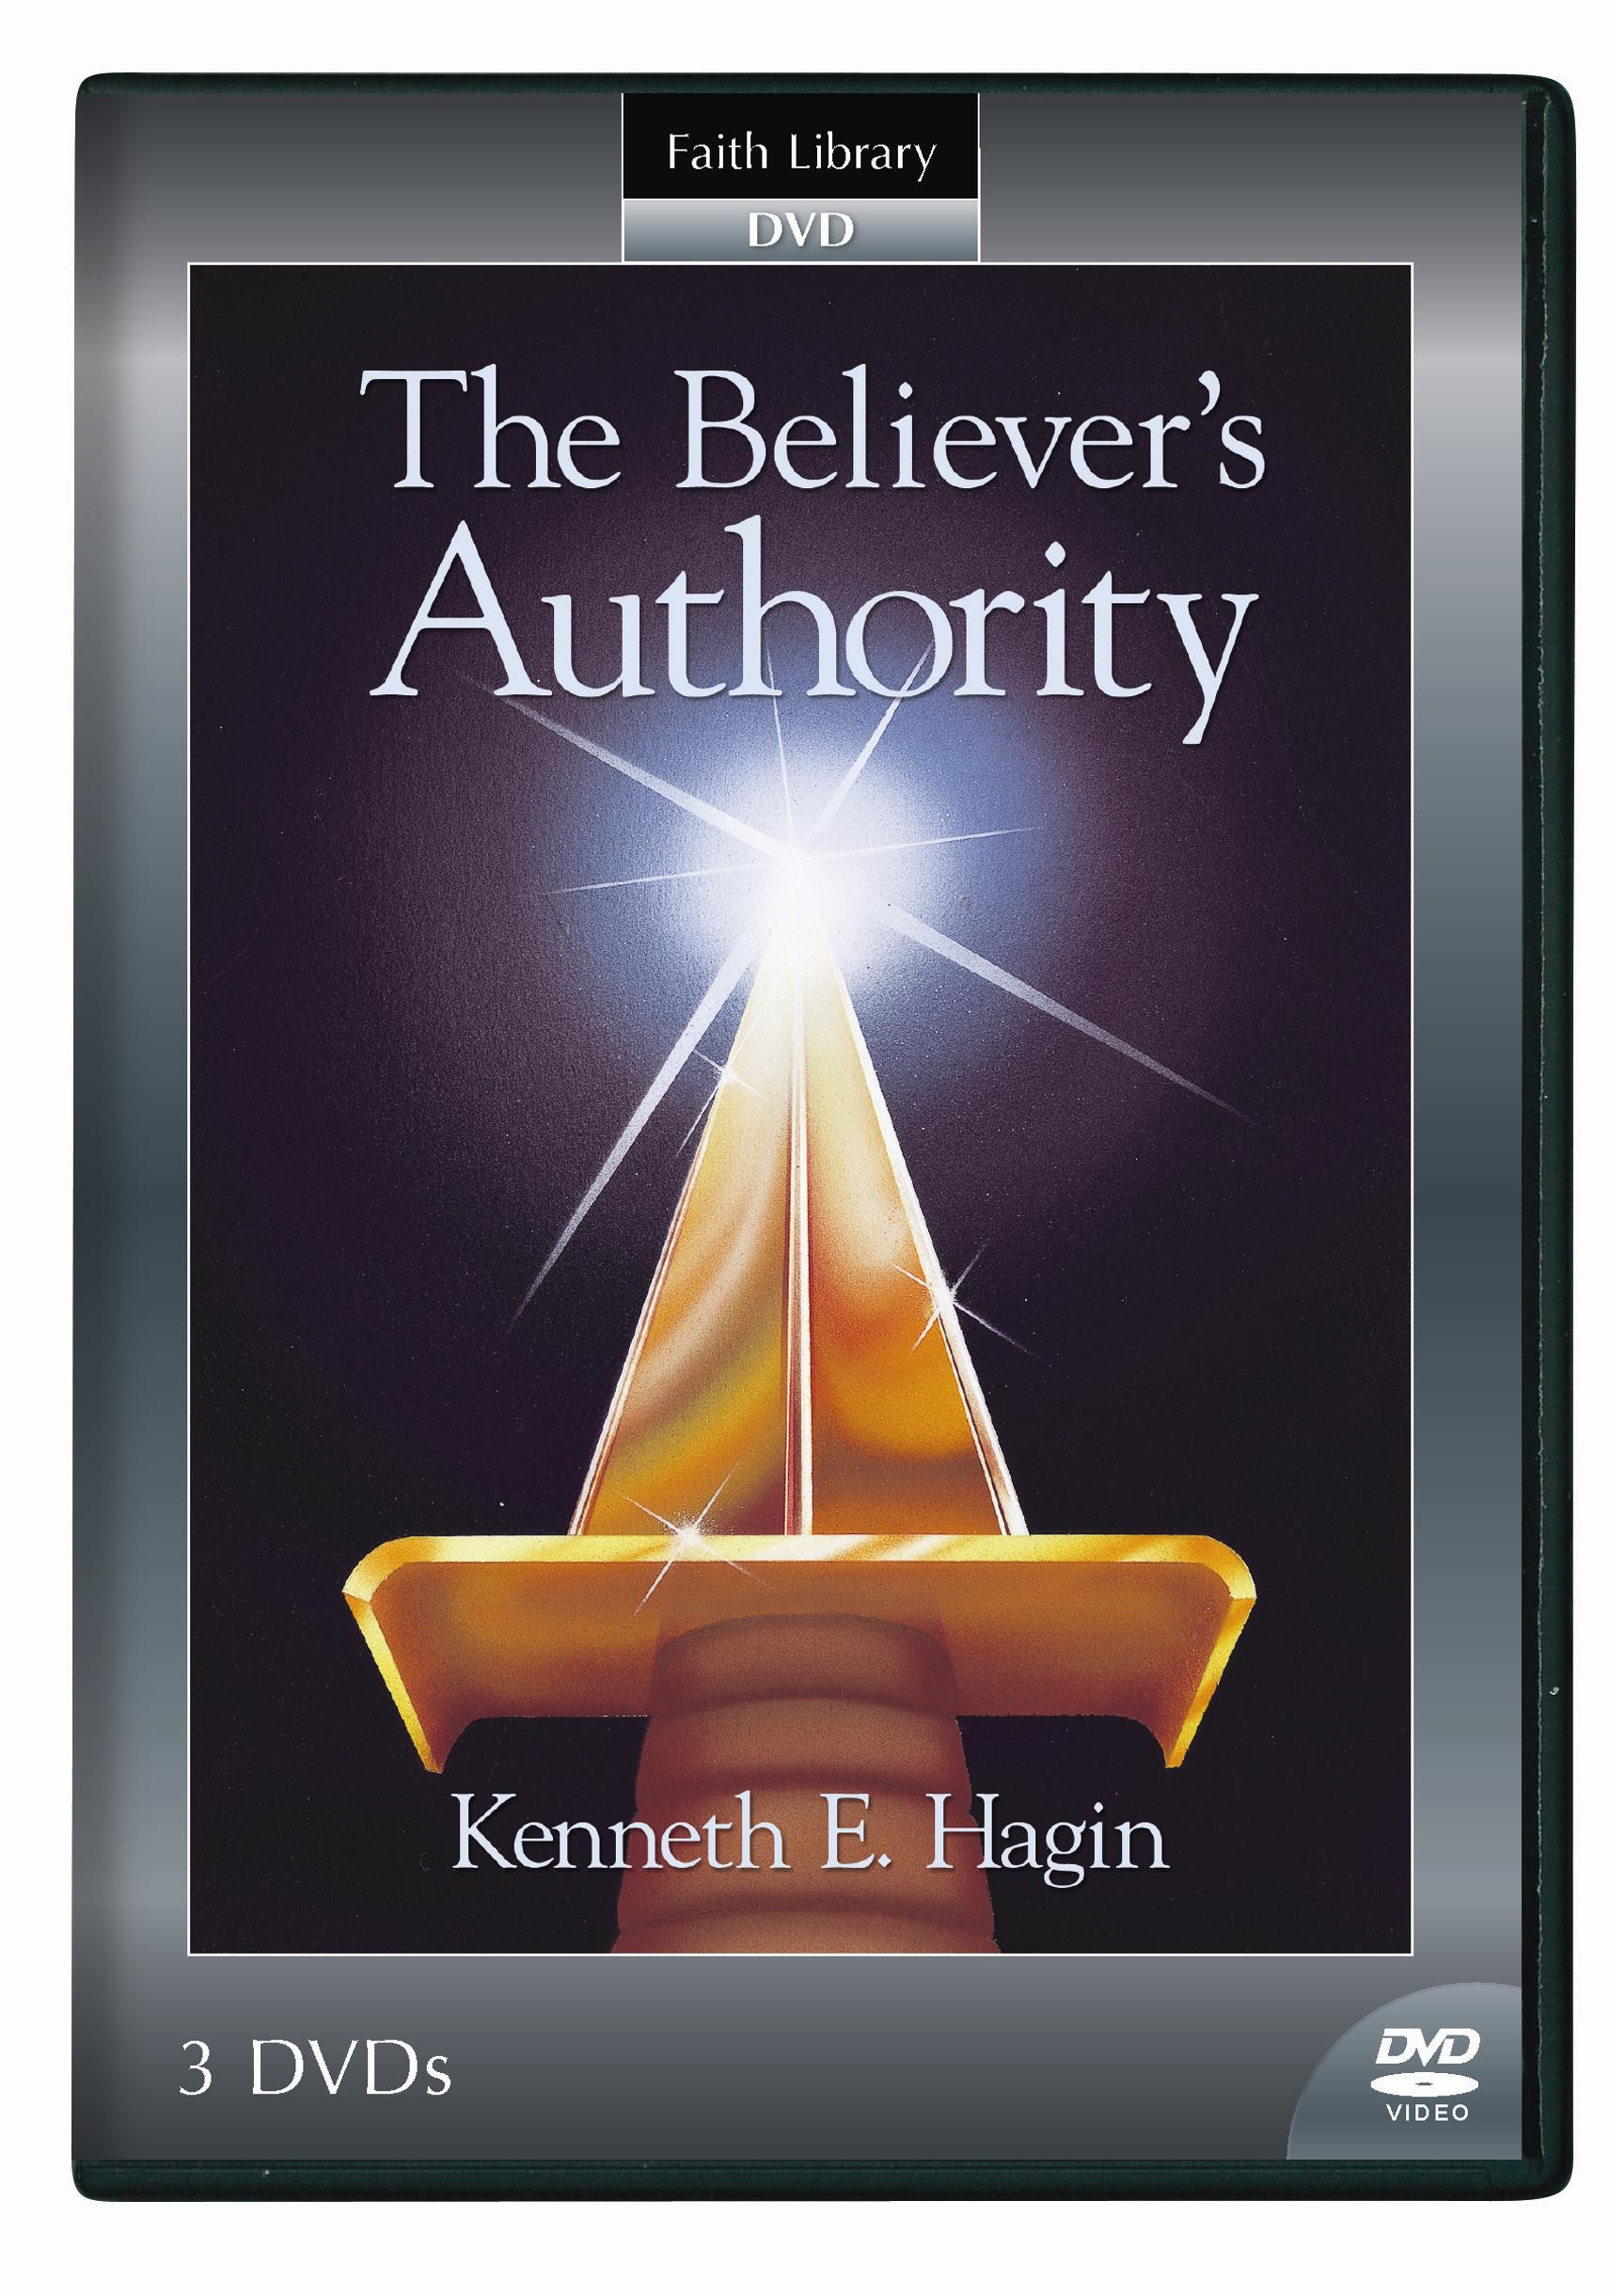 The Believer's Authority (3 DVDs)